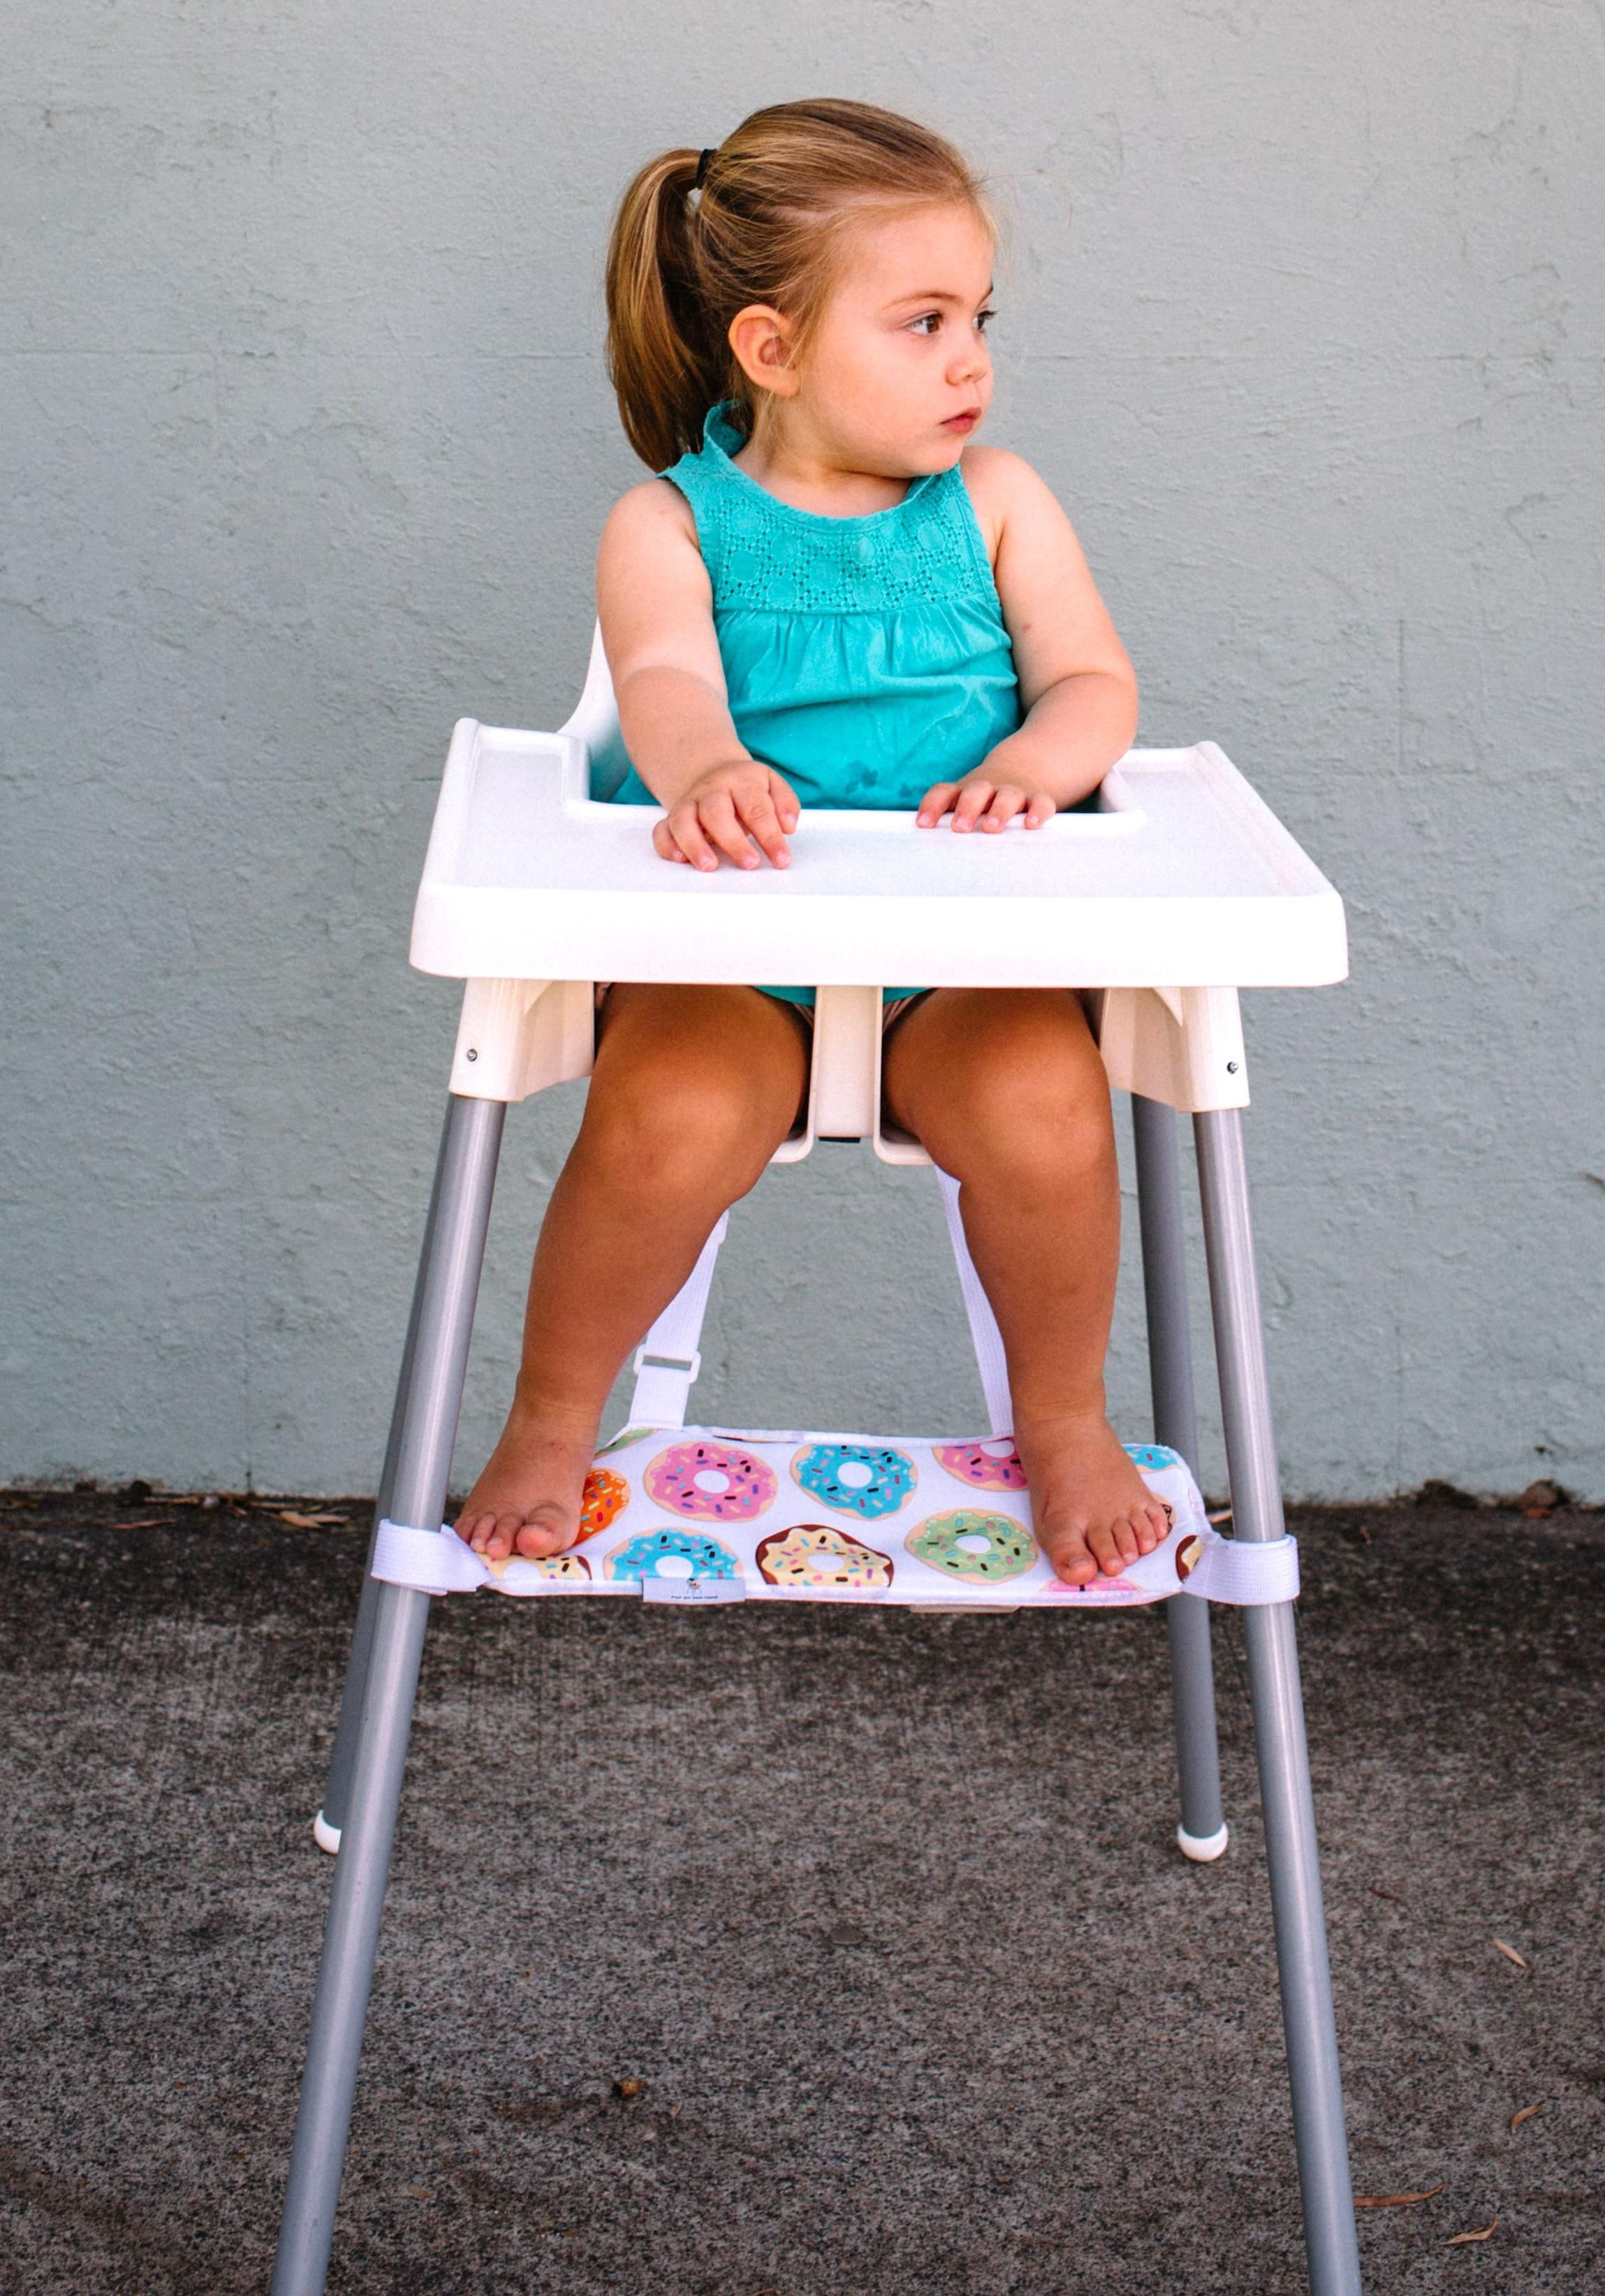 IKEA Antilop baby footrest ikeahighchair